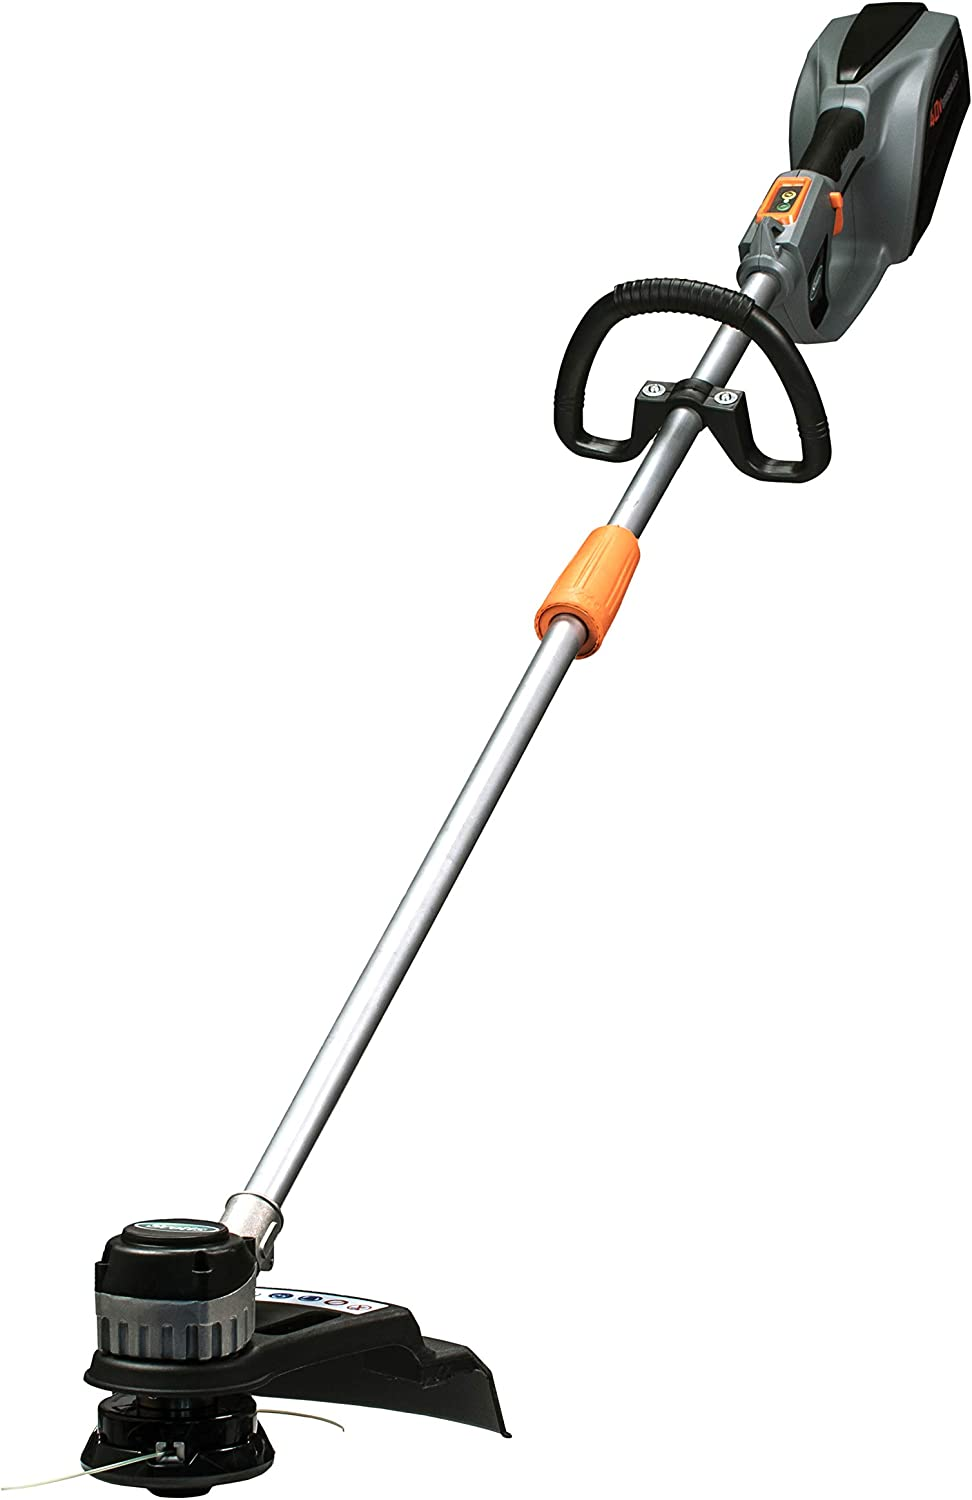 Scotts Outdoor Power Tools LST01540S 40-Volt 15-Inch Cordless String Trimmer, 2Ah Battery Fast Charger Included